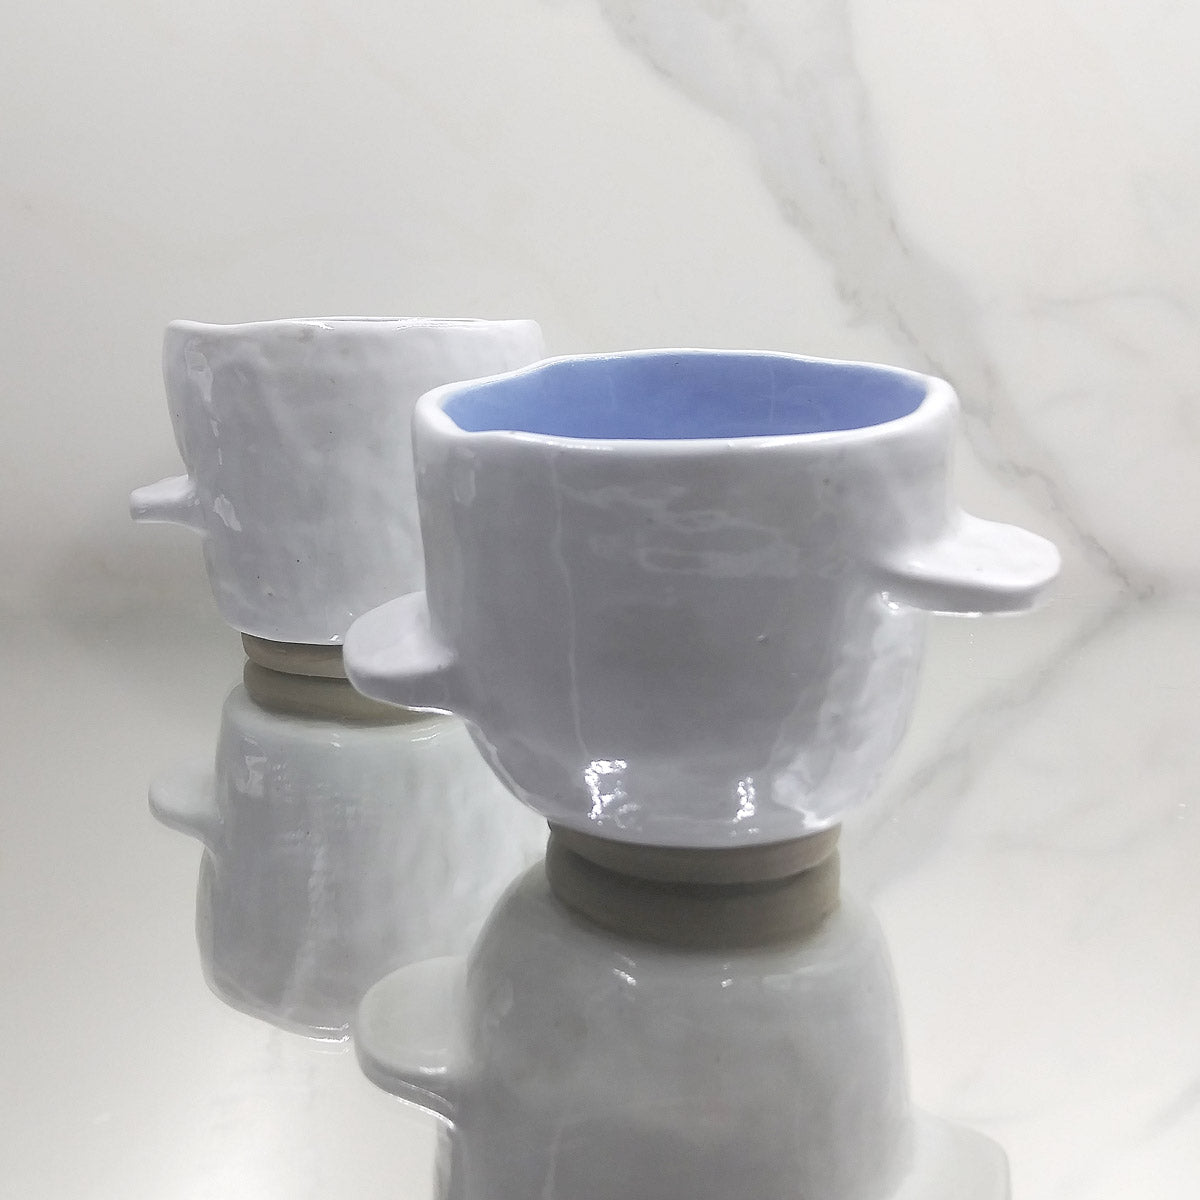 White Tabbed Cup with Blue Interior